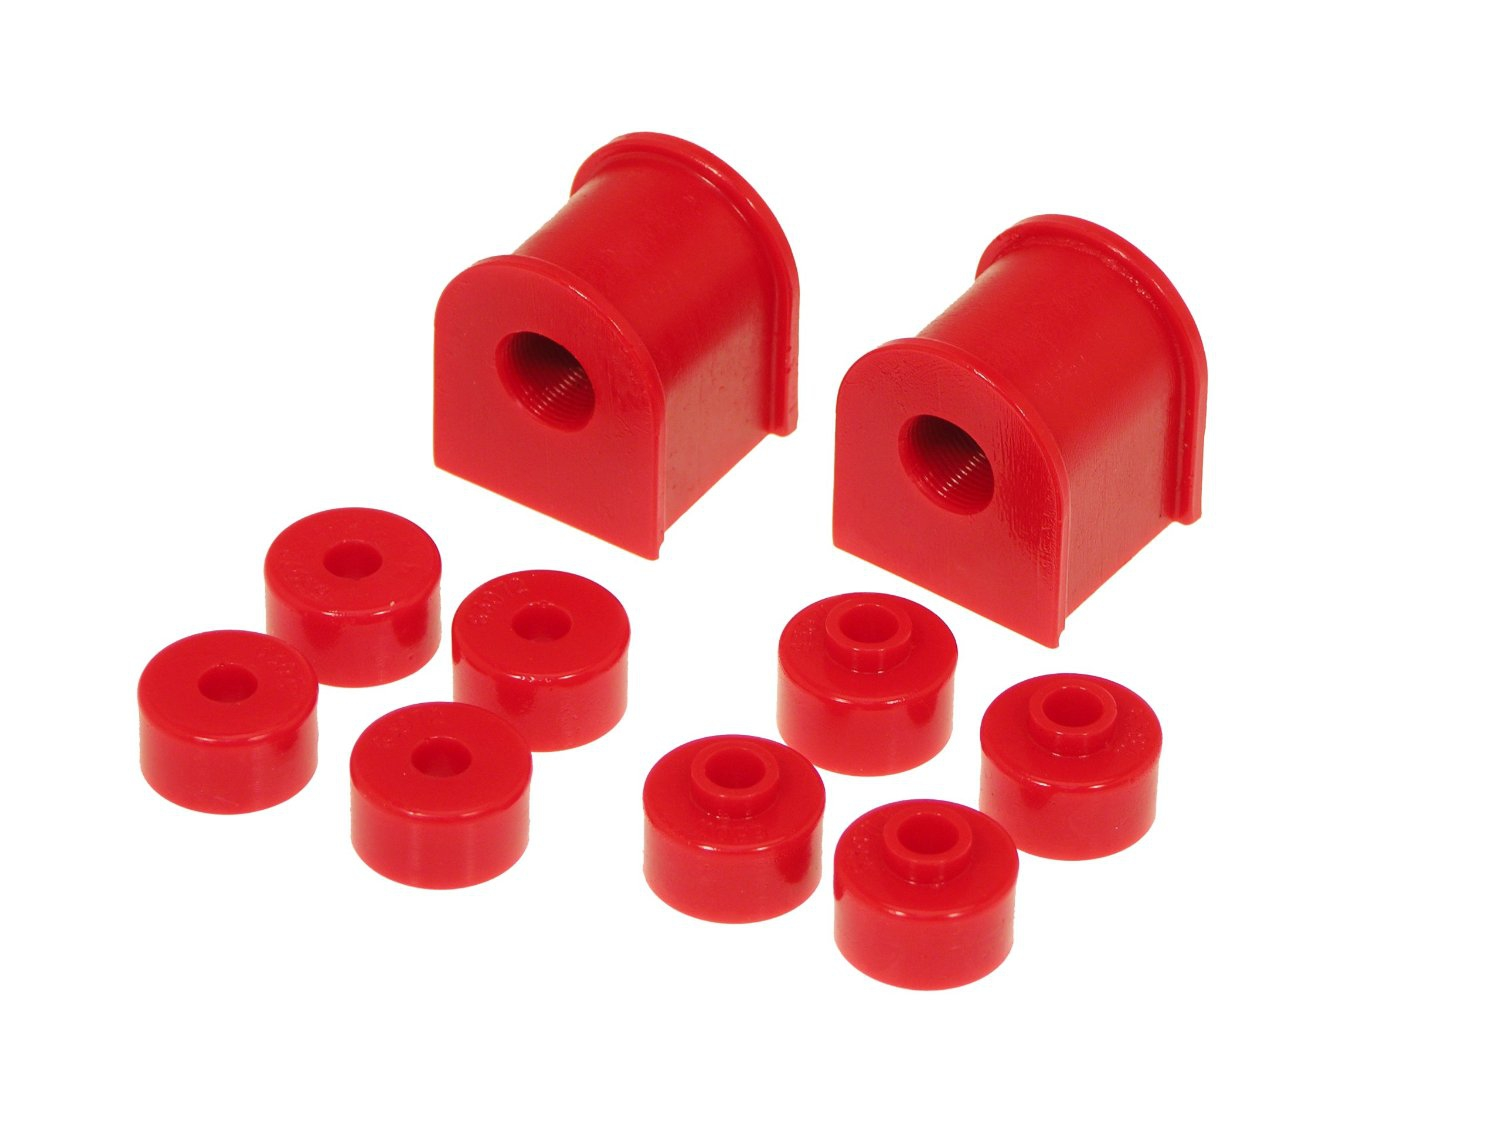 Prothane 14-1120 Rear Sway Bar Bushing Kit, 15mm Red - Nissan 240SX 89-94 S13